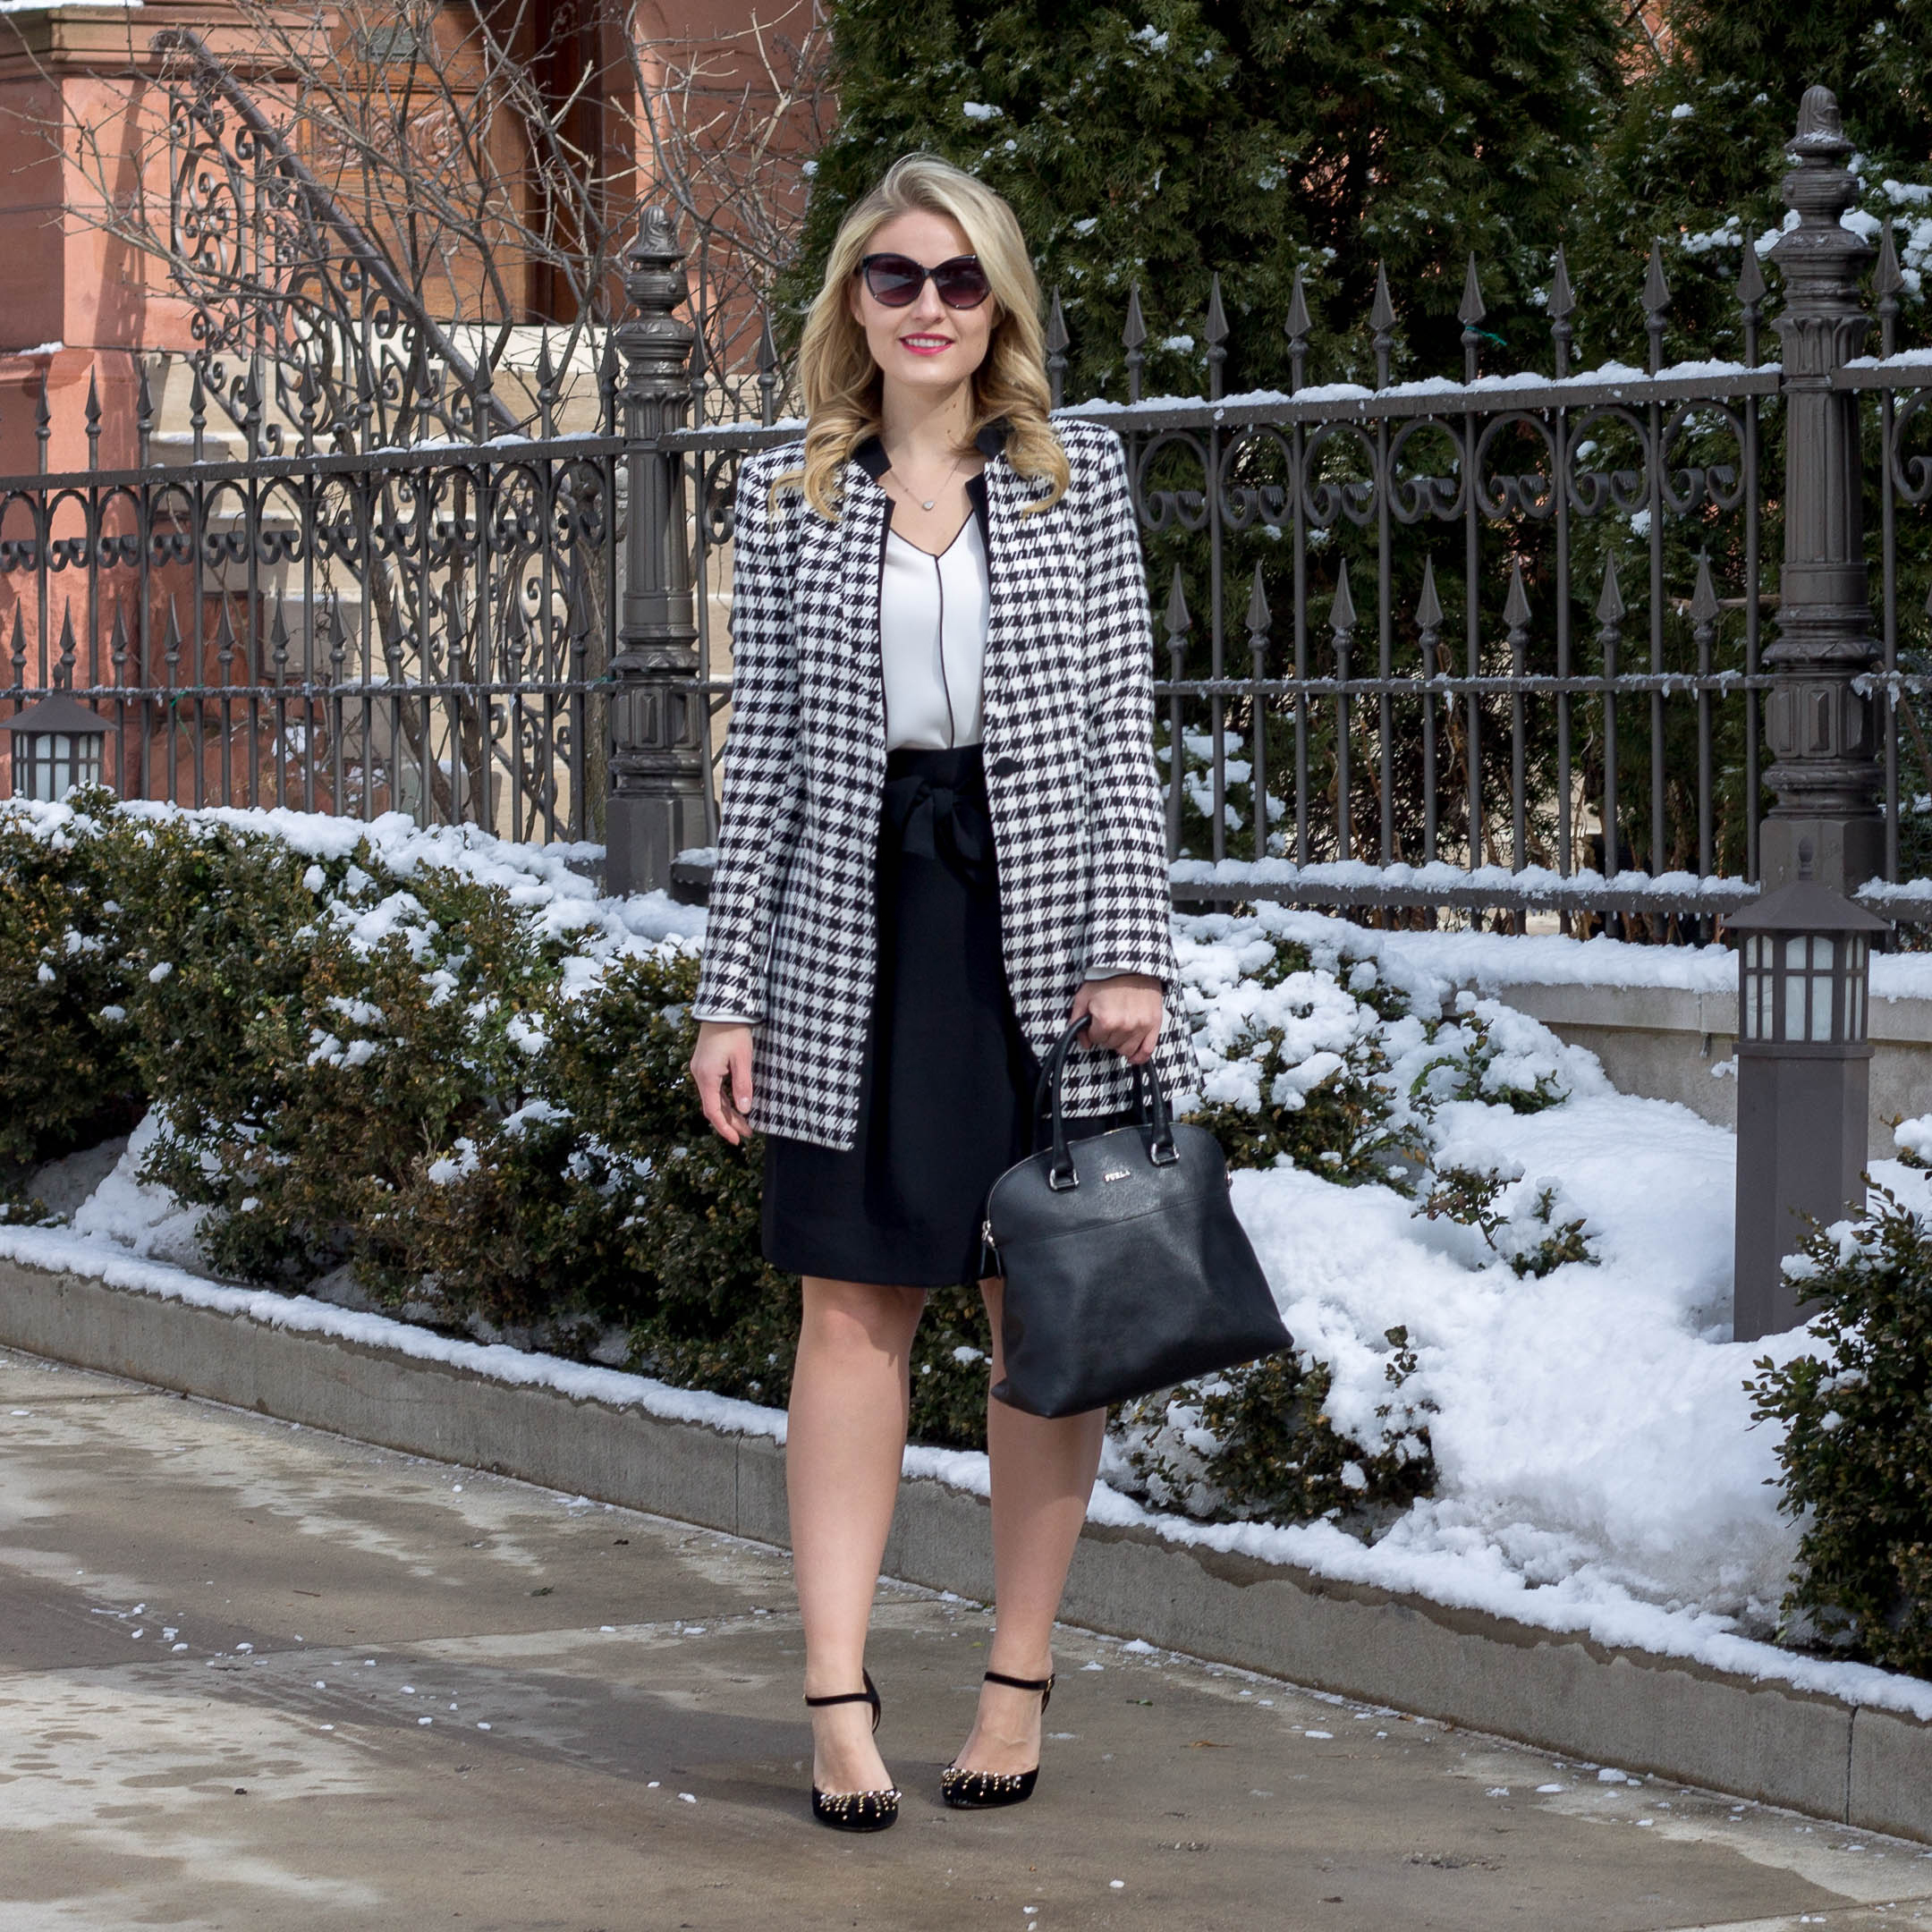 A professional winter work outfit including a houndstooth jacket